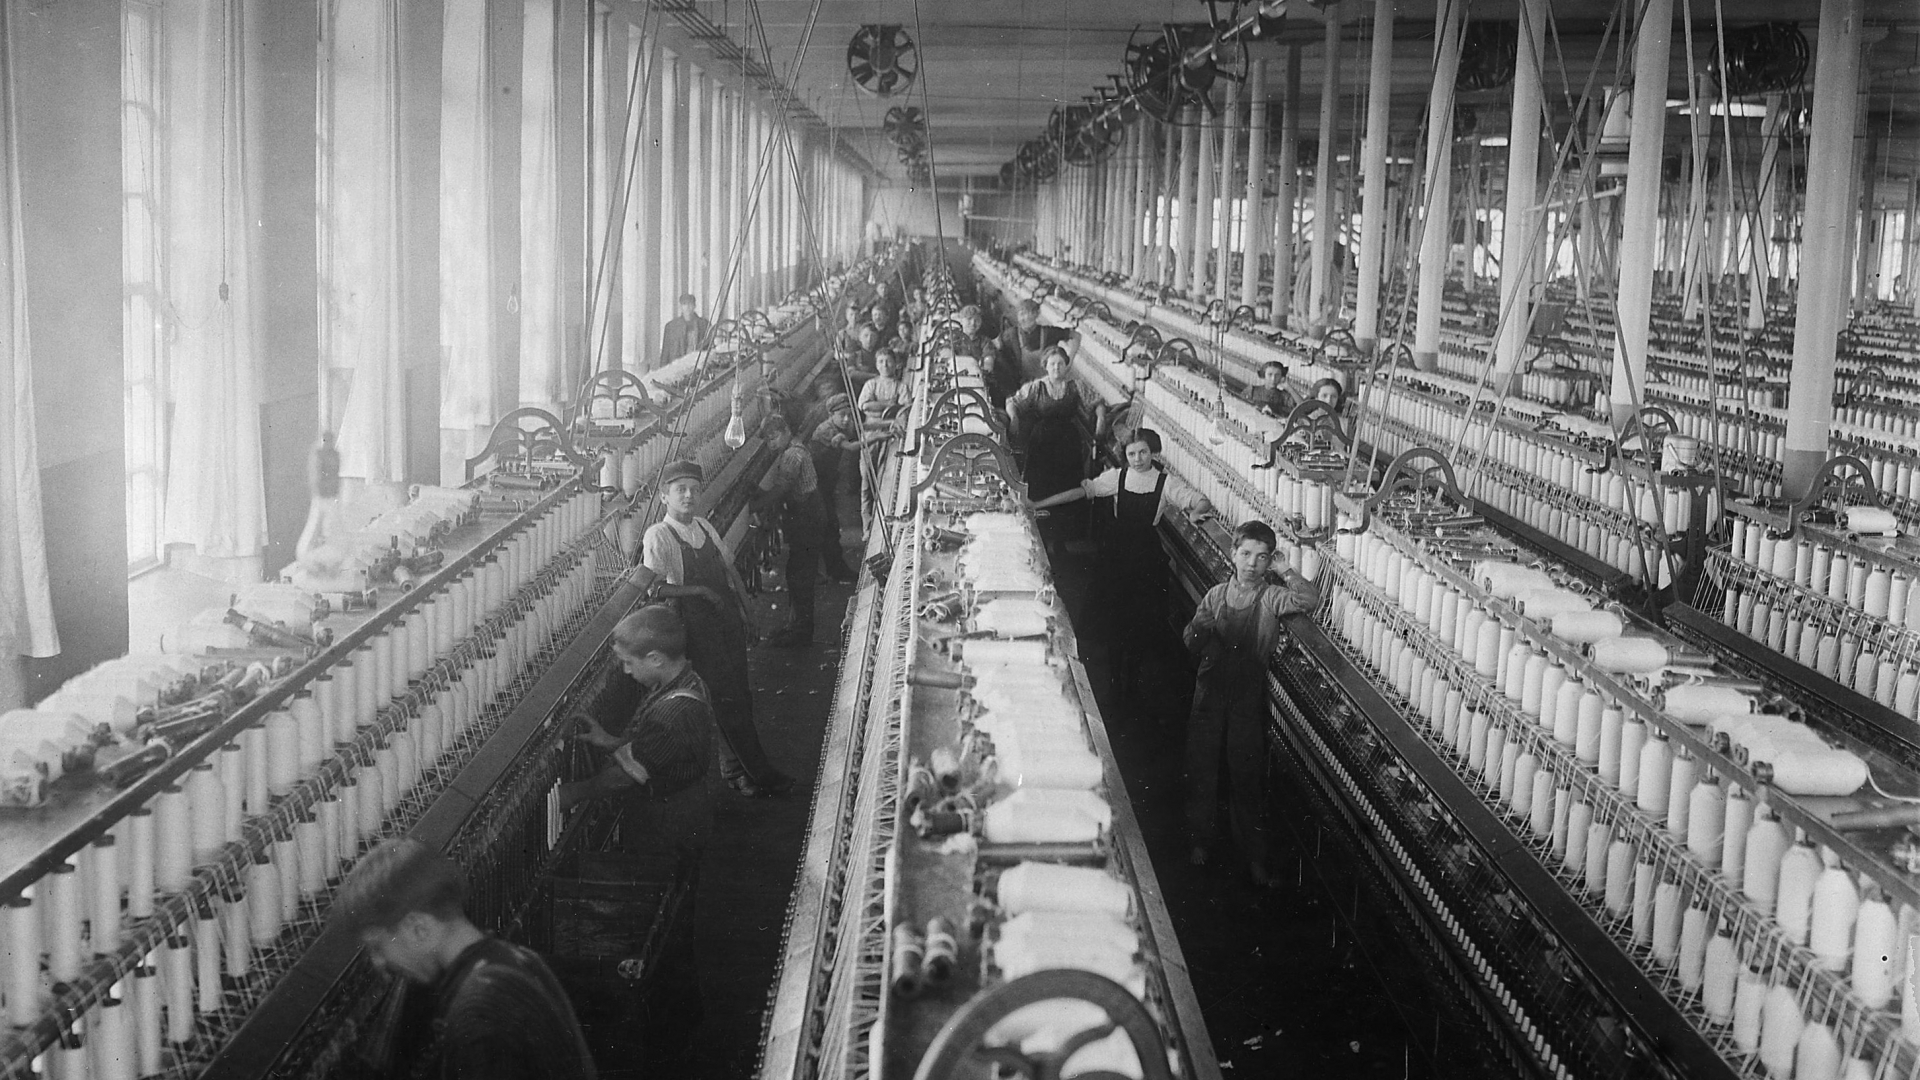 General view of a spinning room at the Cornell Mill in Fall River, Massachusetts, January 1912. (Credit: Lewis Hine/The U.S. National Archives)